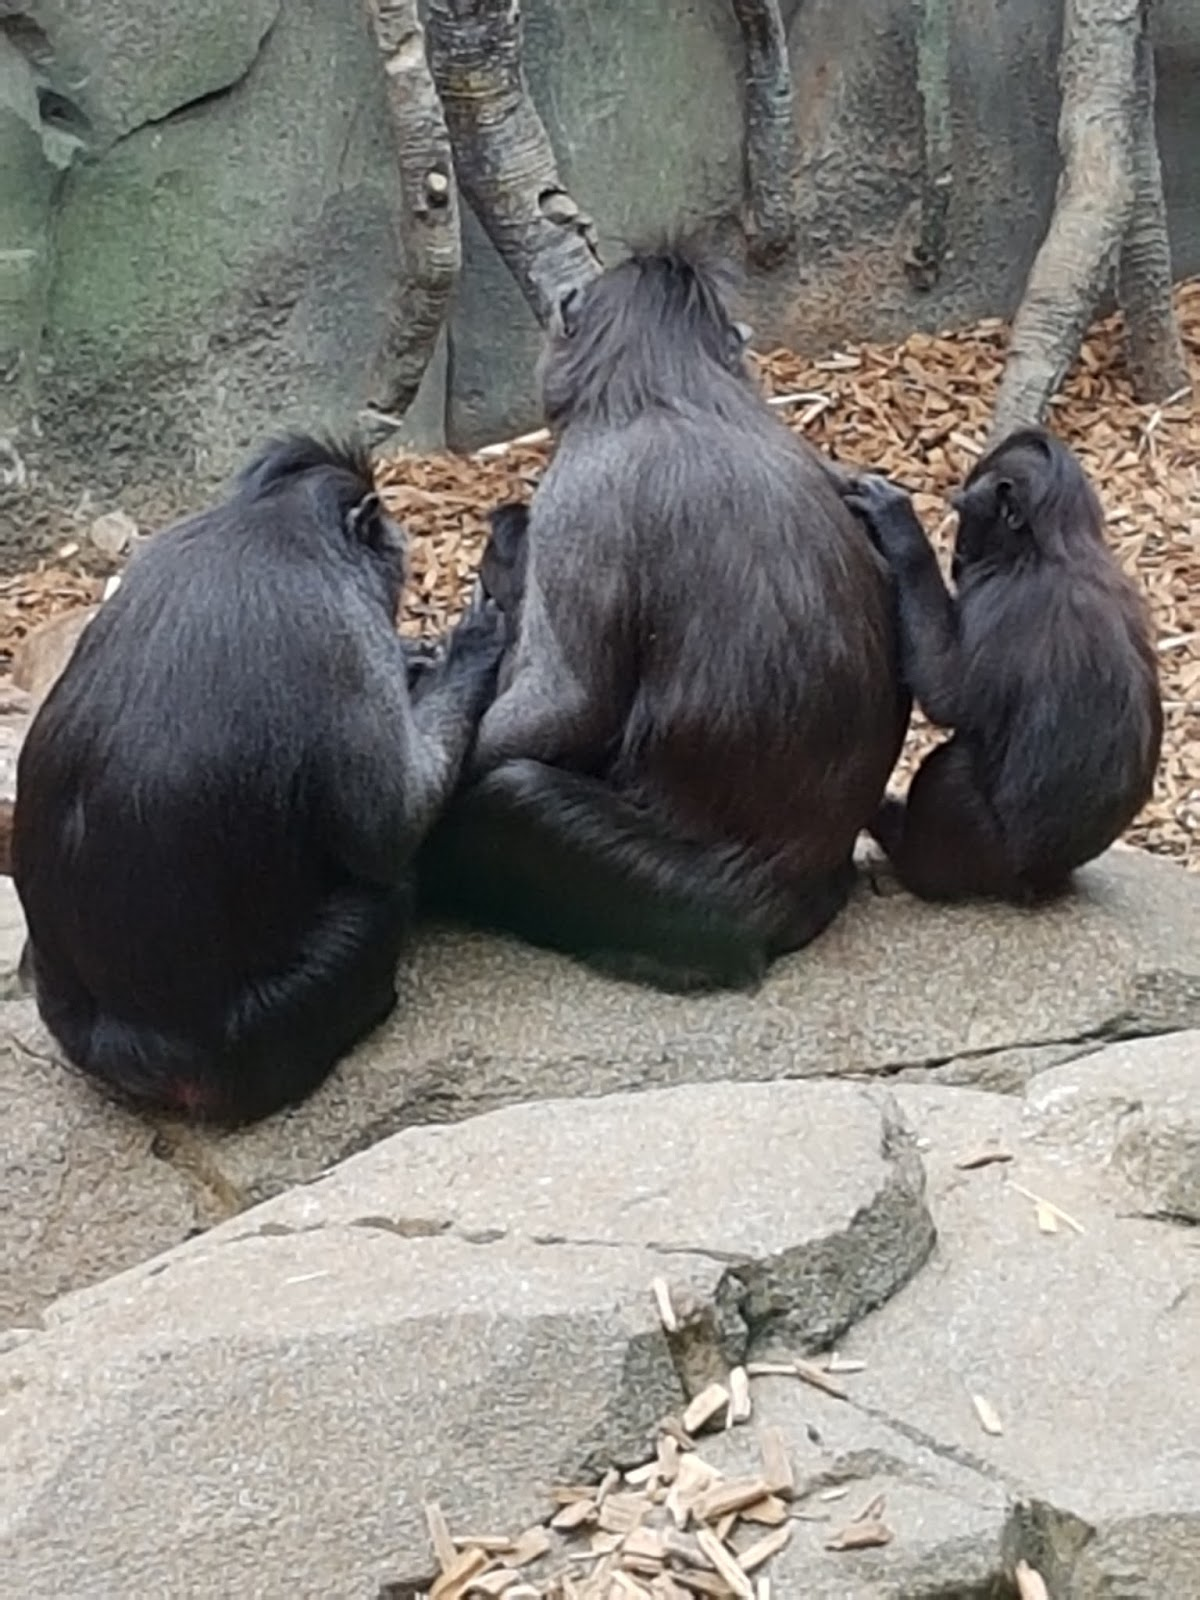 A family group of black coloured apeas sitting on a log with two adults, one is bigger than the other and a baby